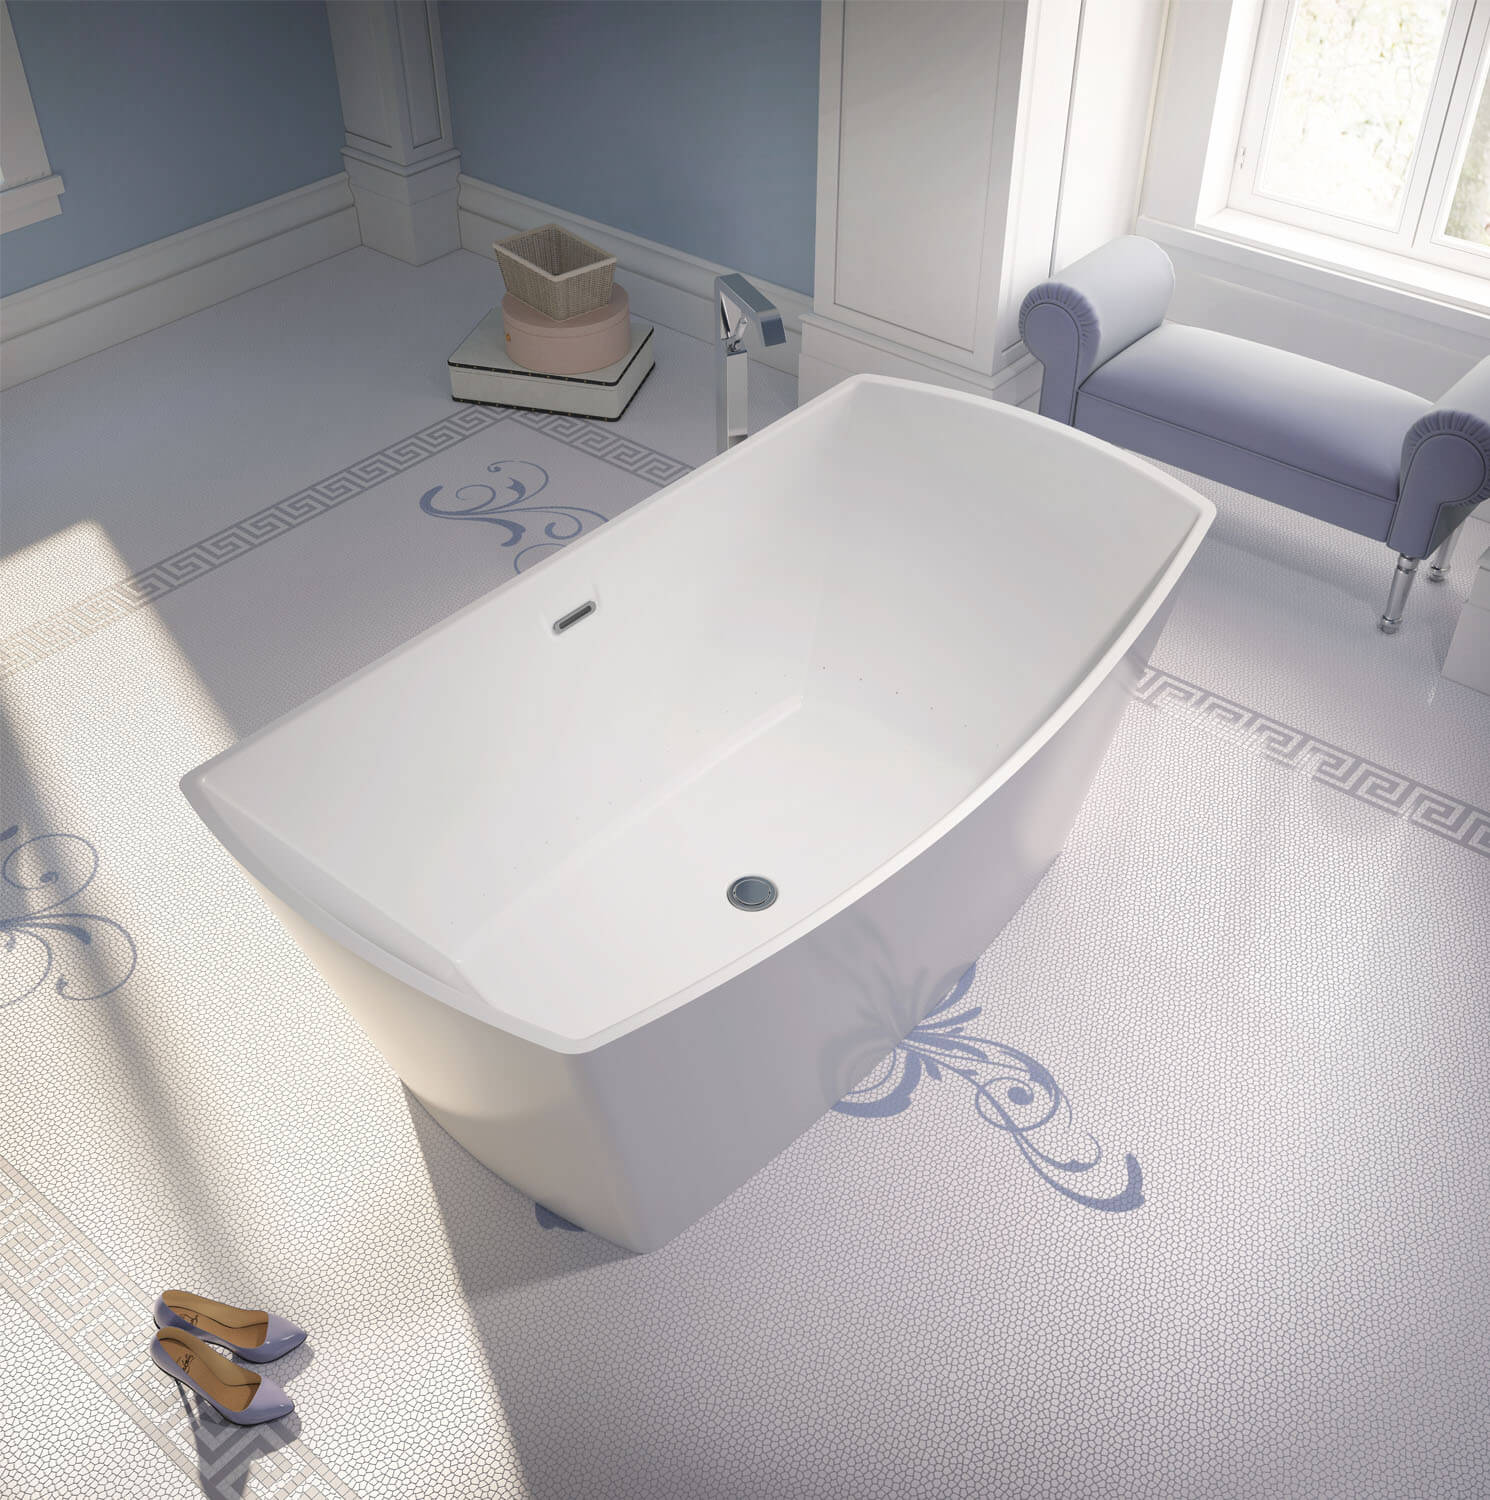 Freestanding Tub With Air Jets. Bainultra Evanescence  6634 two person freestanding air jet bathtub for your modern bathroom Two tub BainUltra